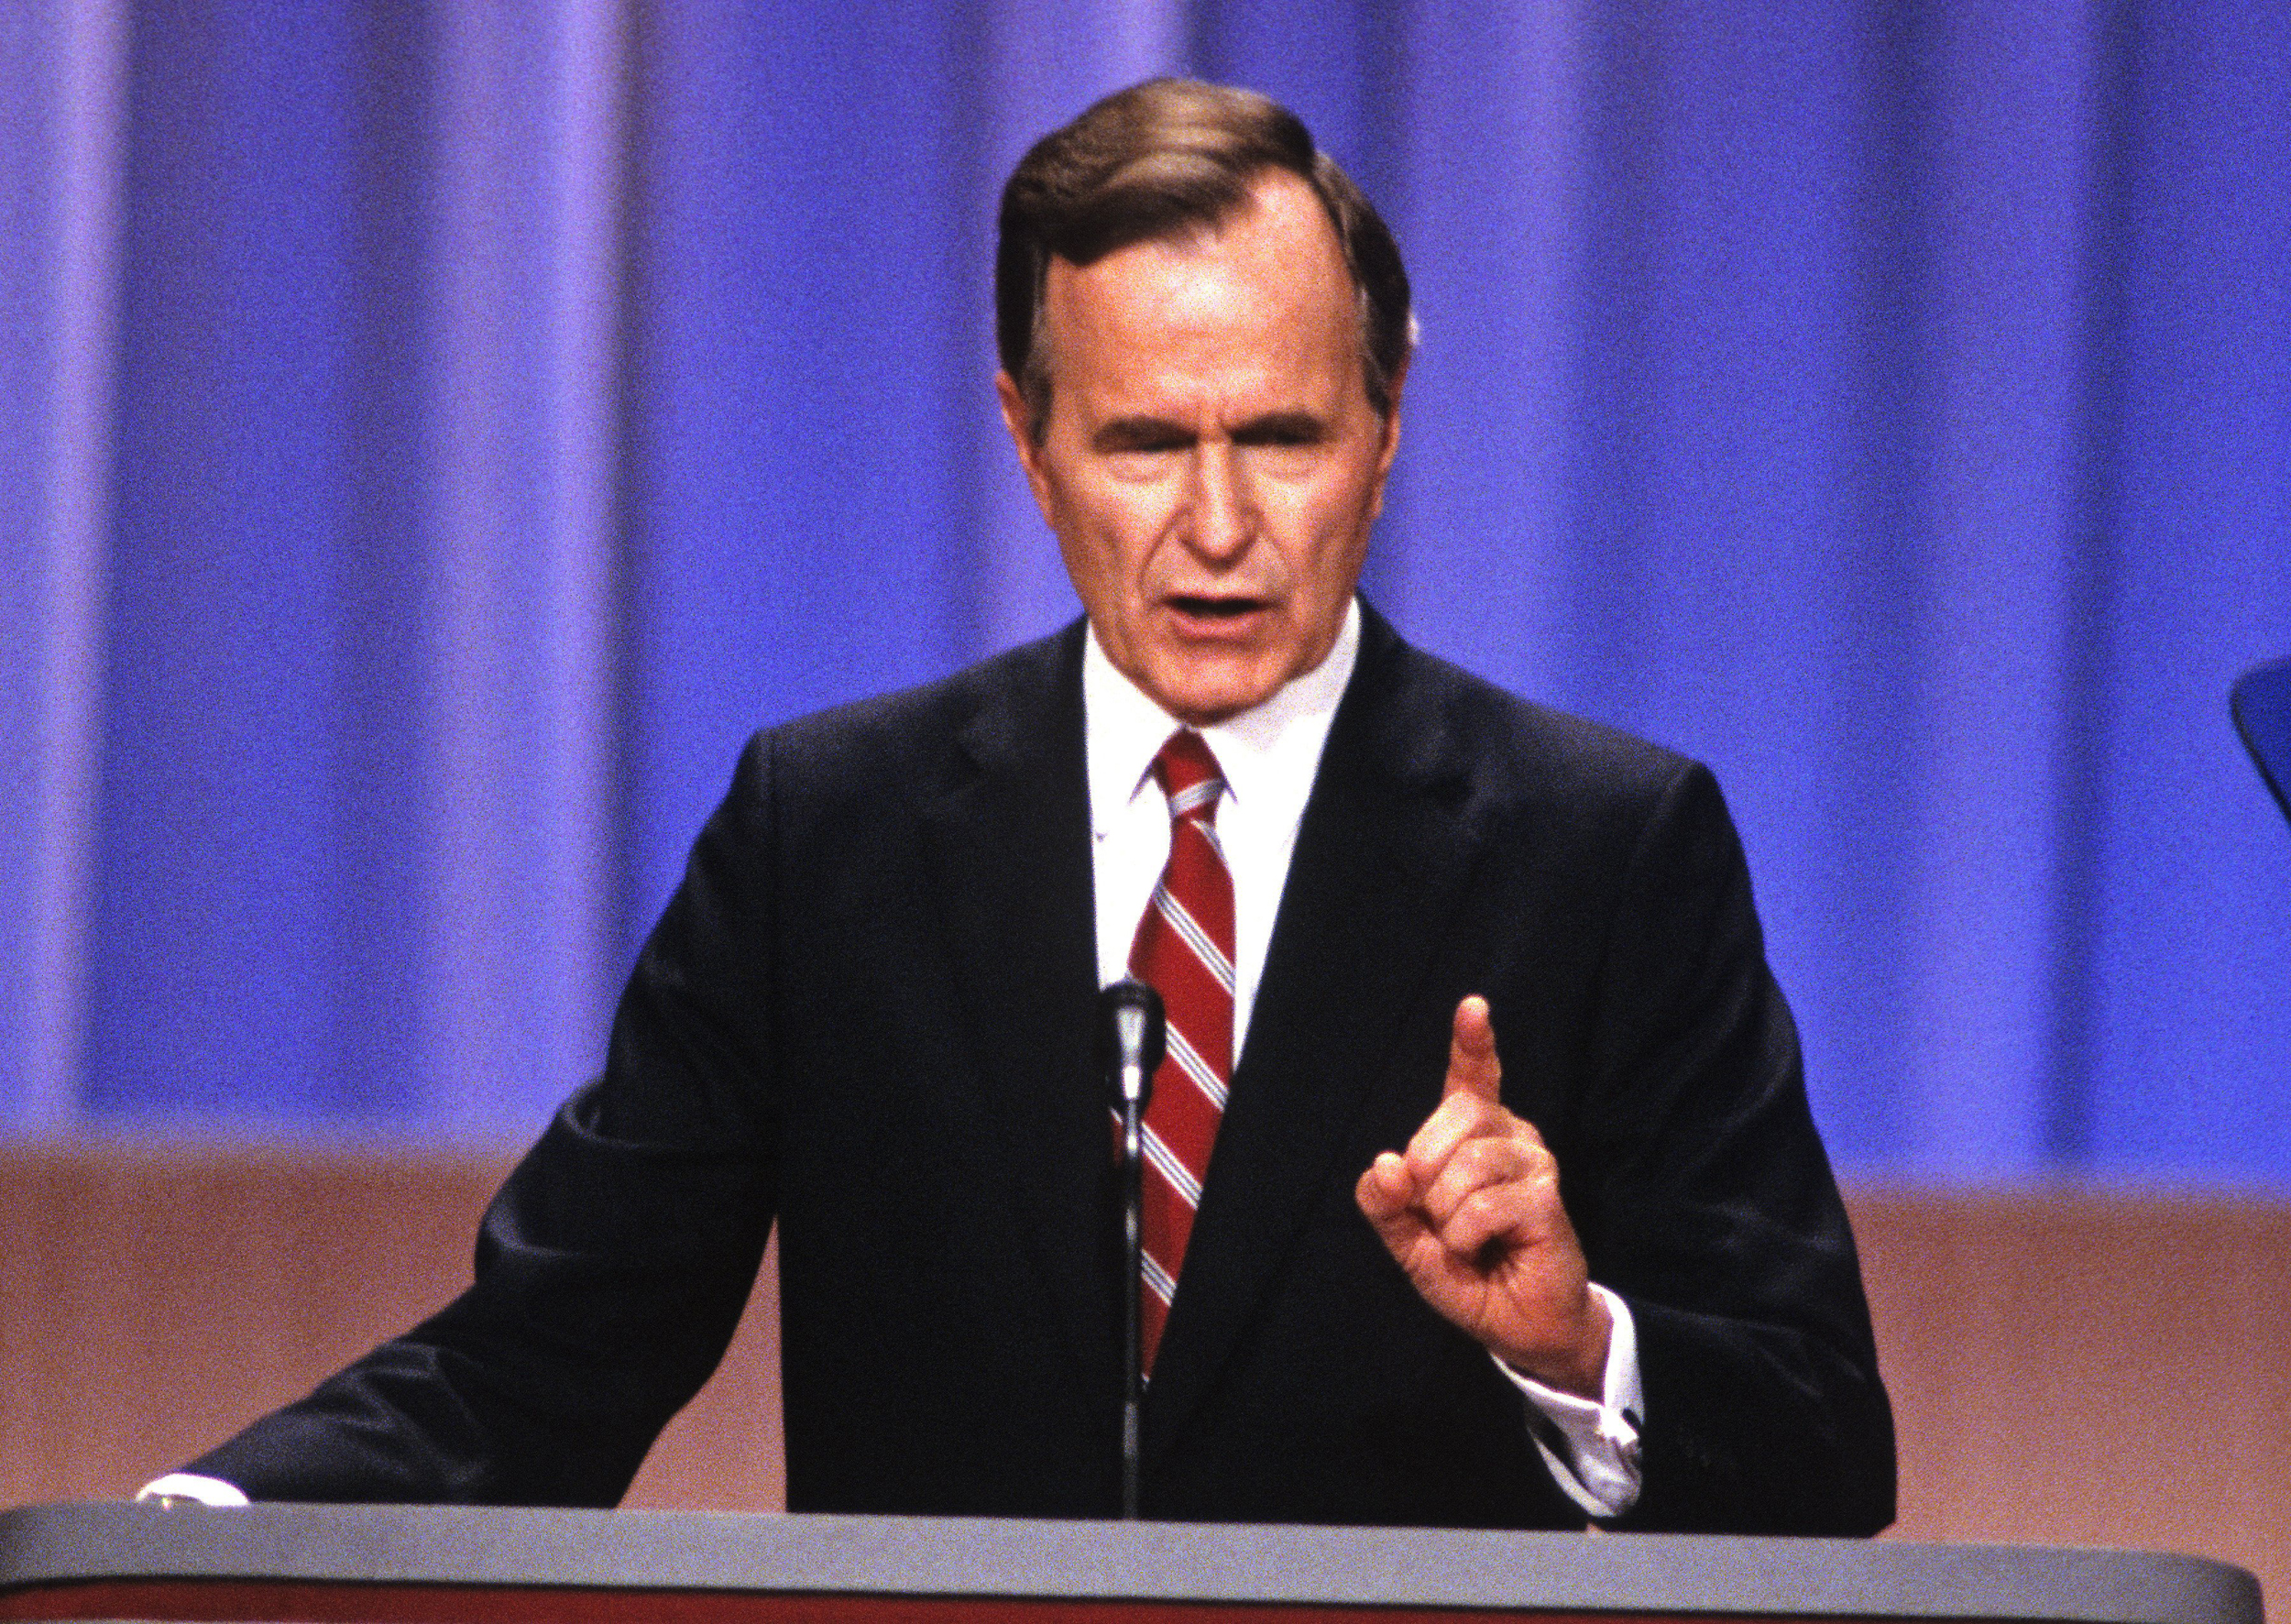 Image: United States Vice President George H.W. Bush at the 1988 Republican Convention at the Super Dome in New Orleans, Louisiana on Aug. 18, 1988.